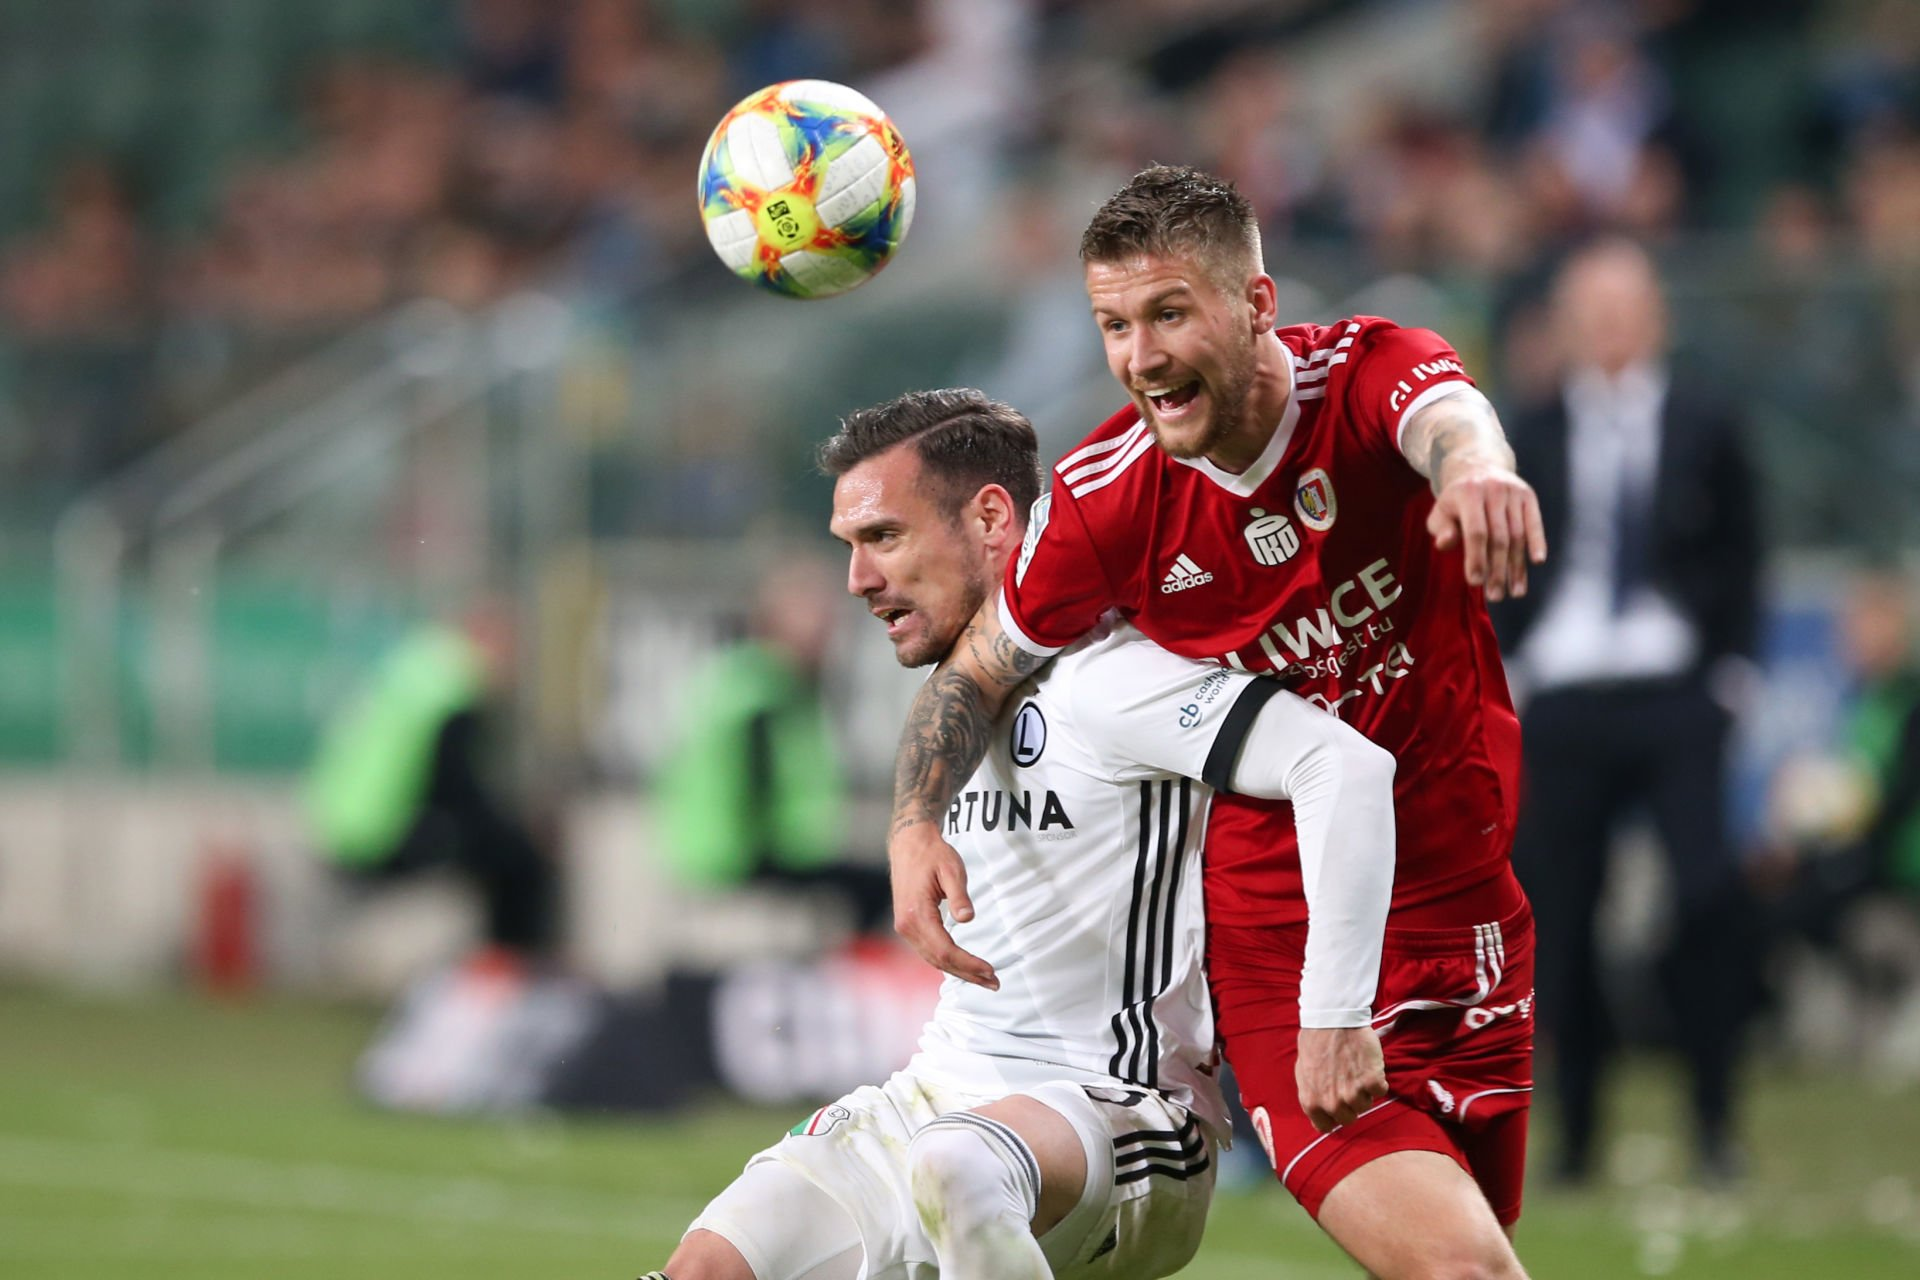 WARSZAWA 04.05.2019 MECZ 34. KOLEJKA LOTTO EKSTRAKLASA SEZON 2018/19 --- POLISH FOOTBALL TOP LEAGUE MATCH IN WARSAW: LEGIA WARSZAWA - PIAST GLIWICE 0:1 MARKO VESOVIC PIOTR PARZYSZEK FOT. PIOTR KUCZA/ 400mm.pl